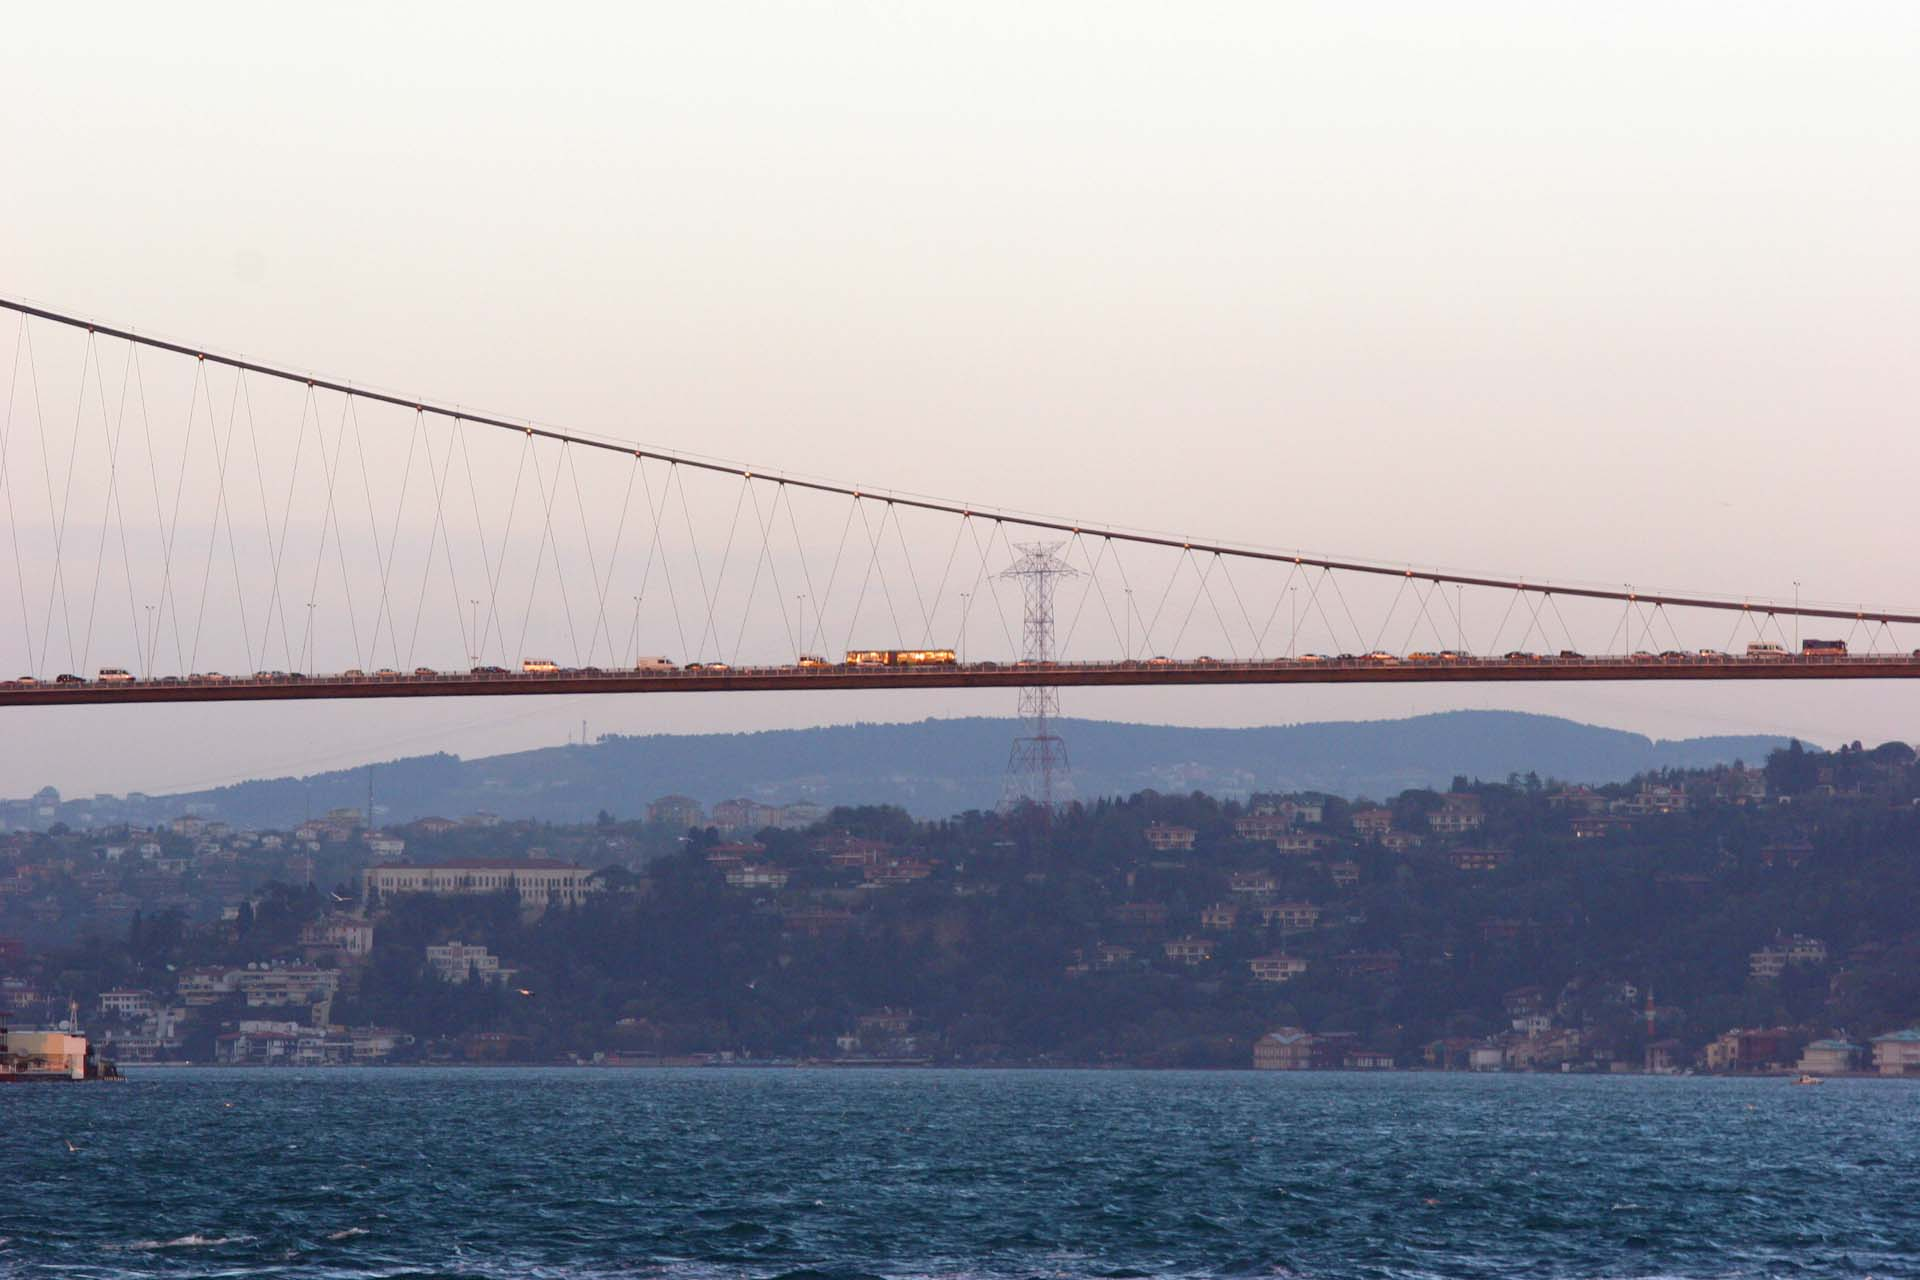 The first (of three) modern bridges connecting Europe and Asia, the Boğaz Köprüsü opened in 1973